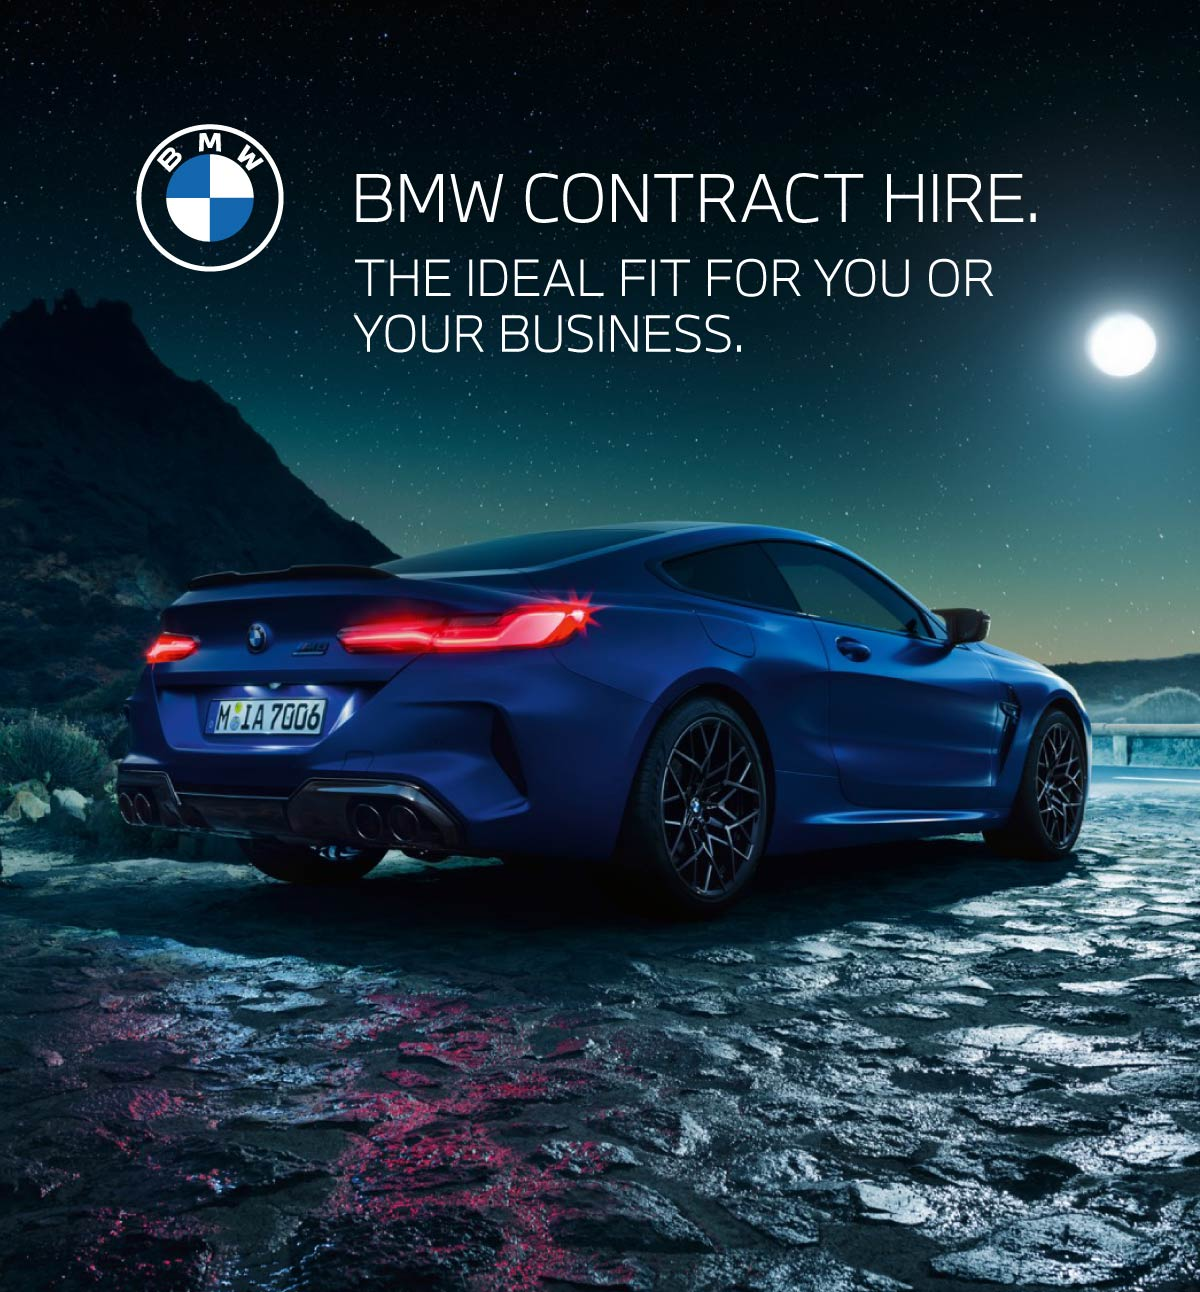 BMW Contract Hire BB